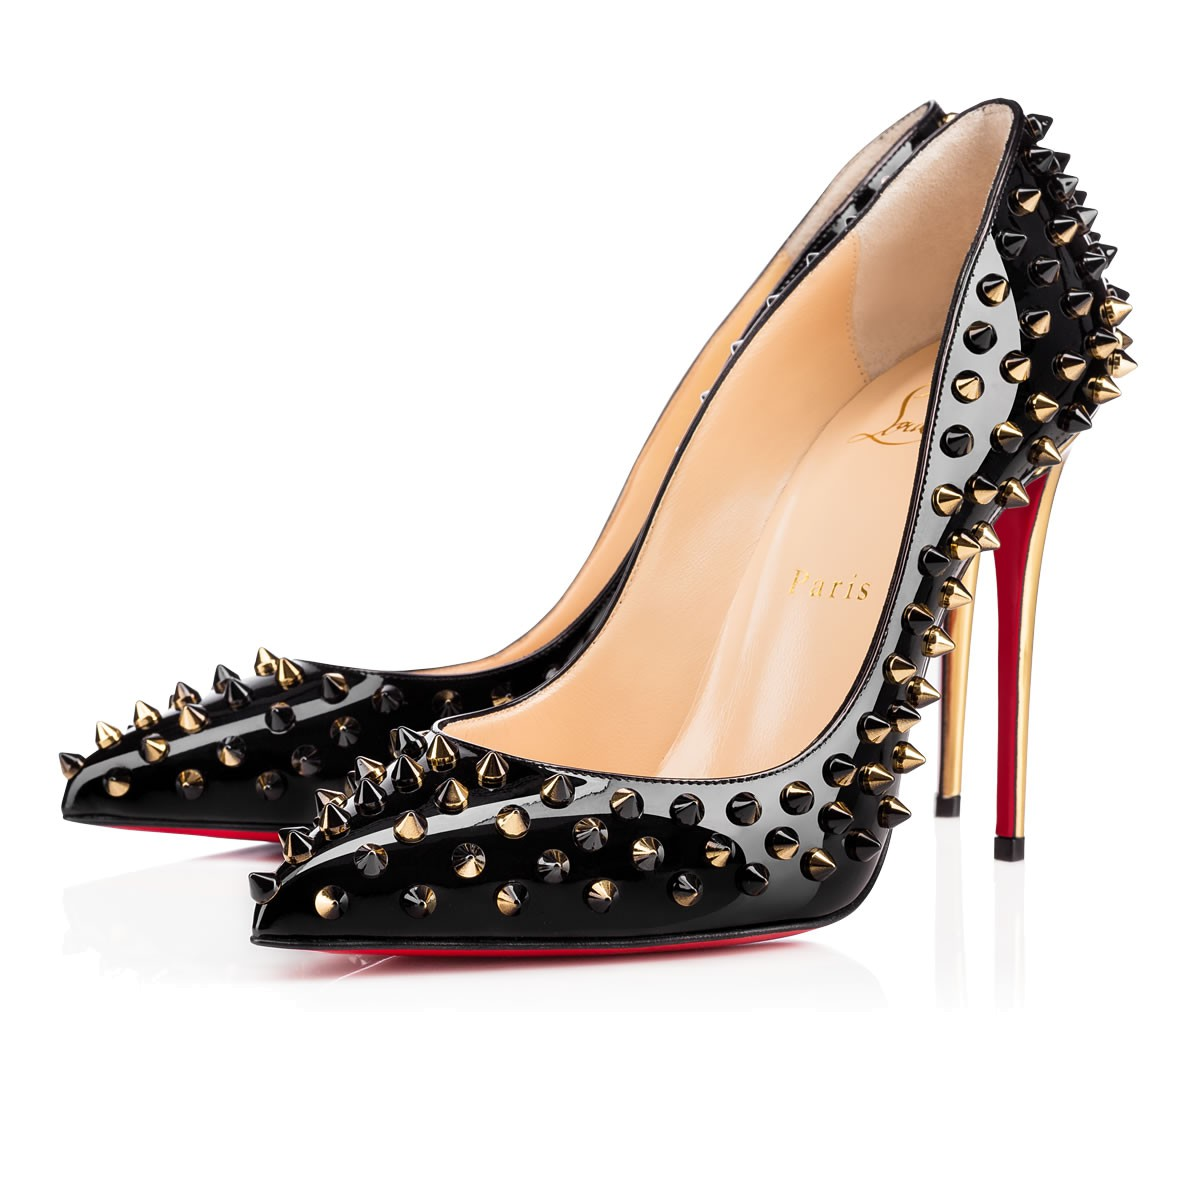 f0773f27889 Christian Louboutin Follies Spiked Velvet 100Mm Red Sole Pump ...